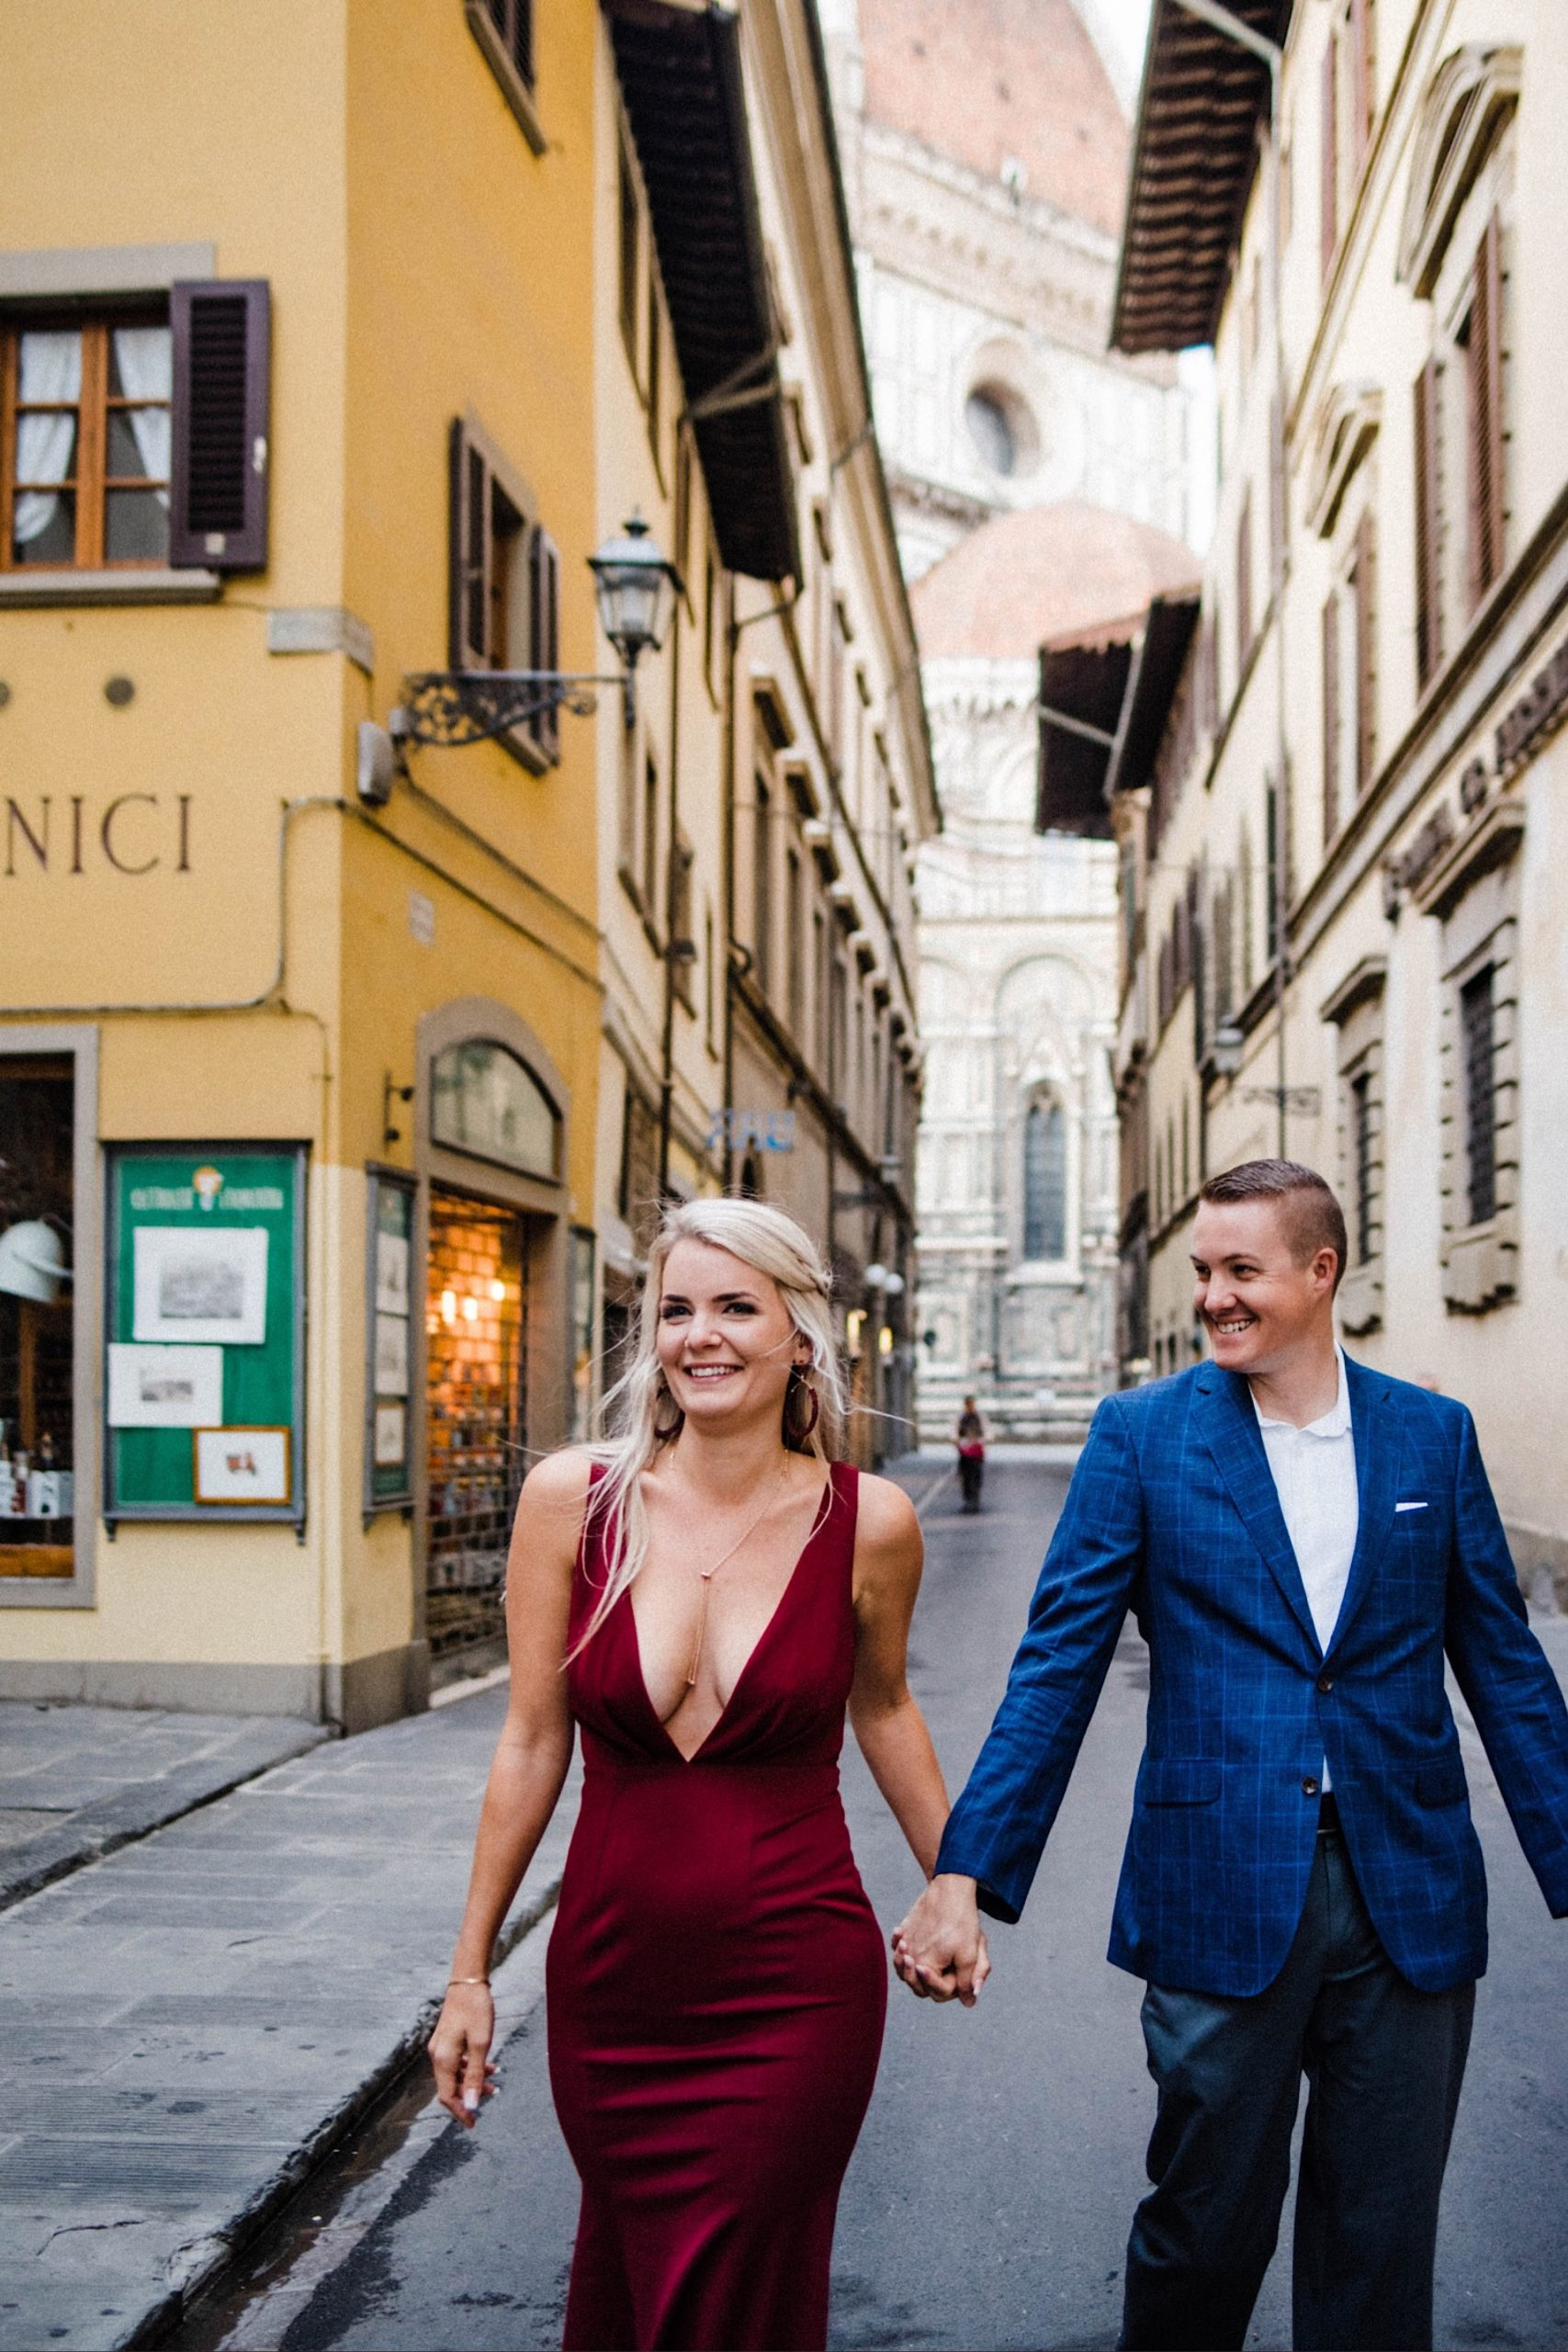 A couple walk hand-in-hand down a laneway in florence, laughing and smiling. She wears a red dress and he wears a blue suit.